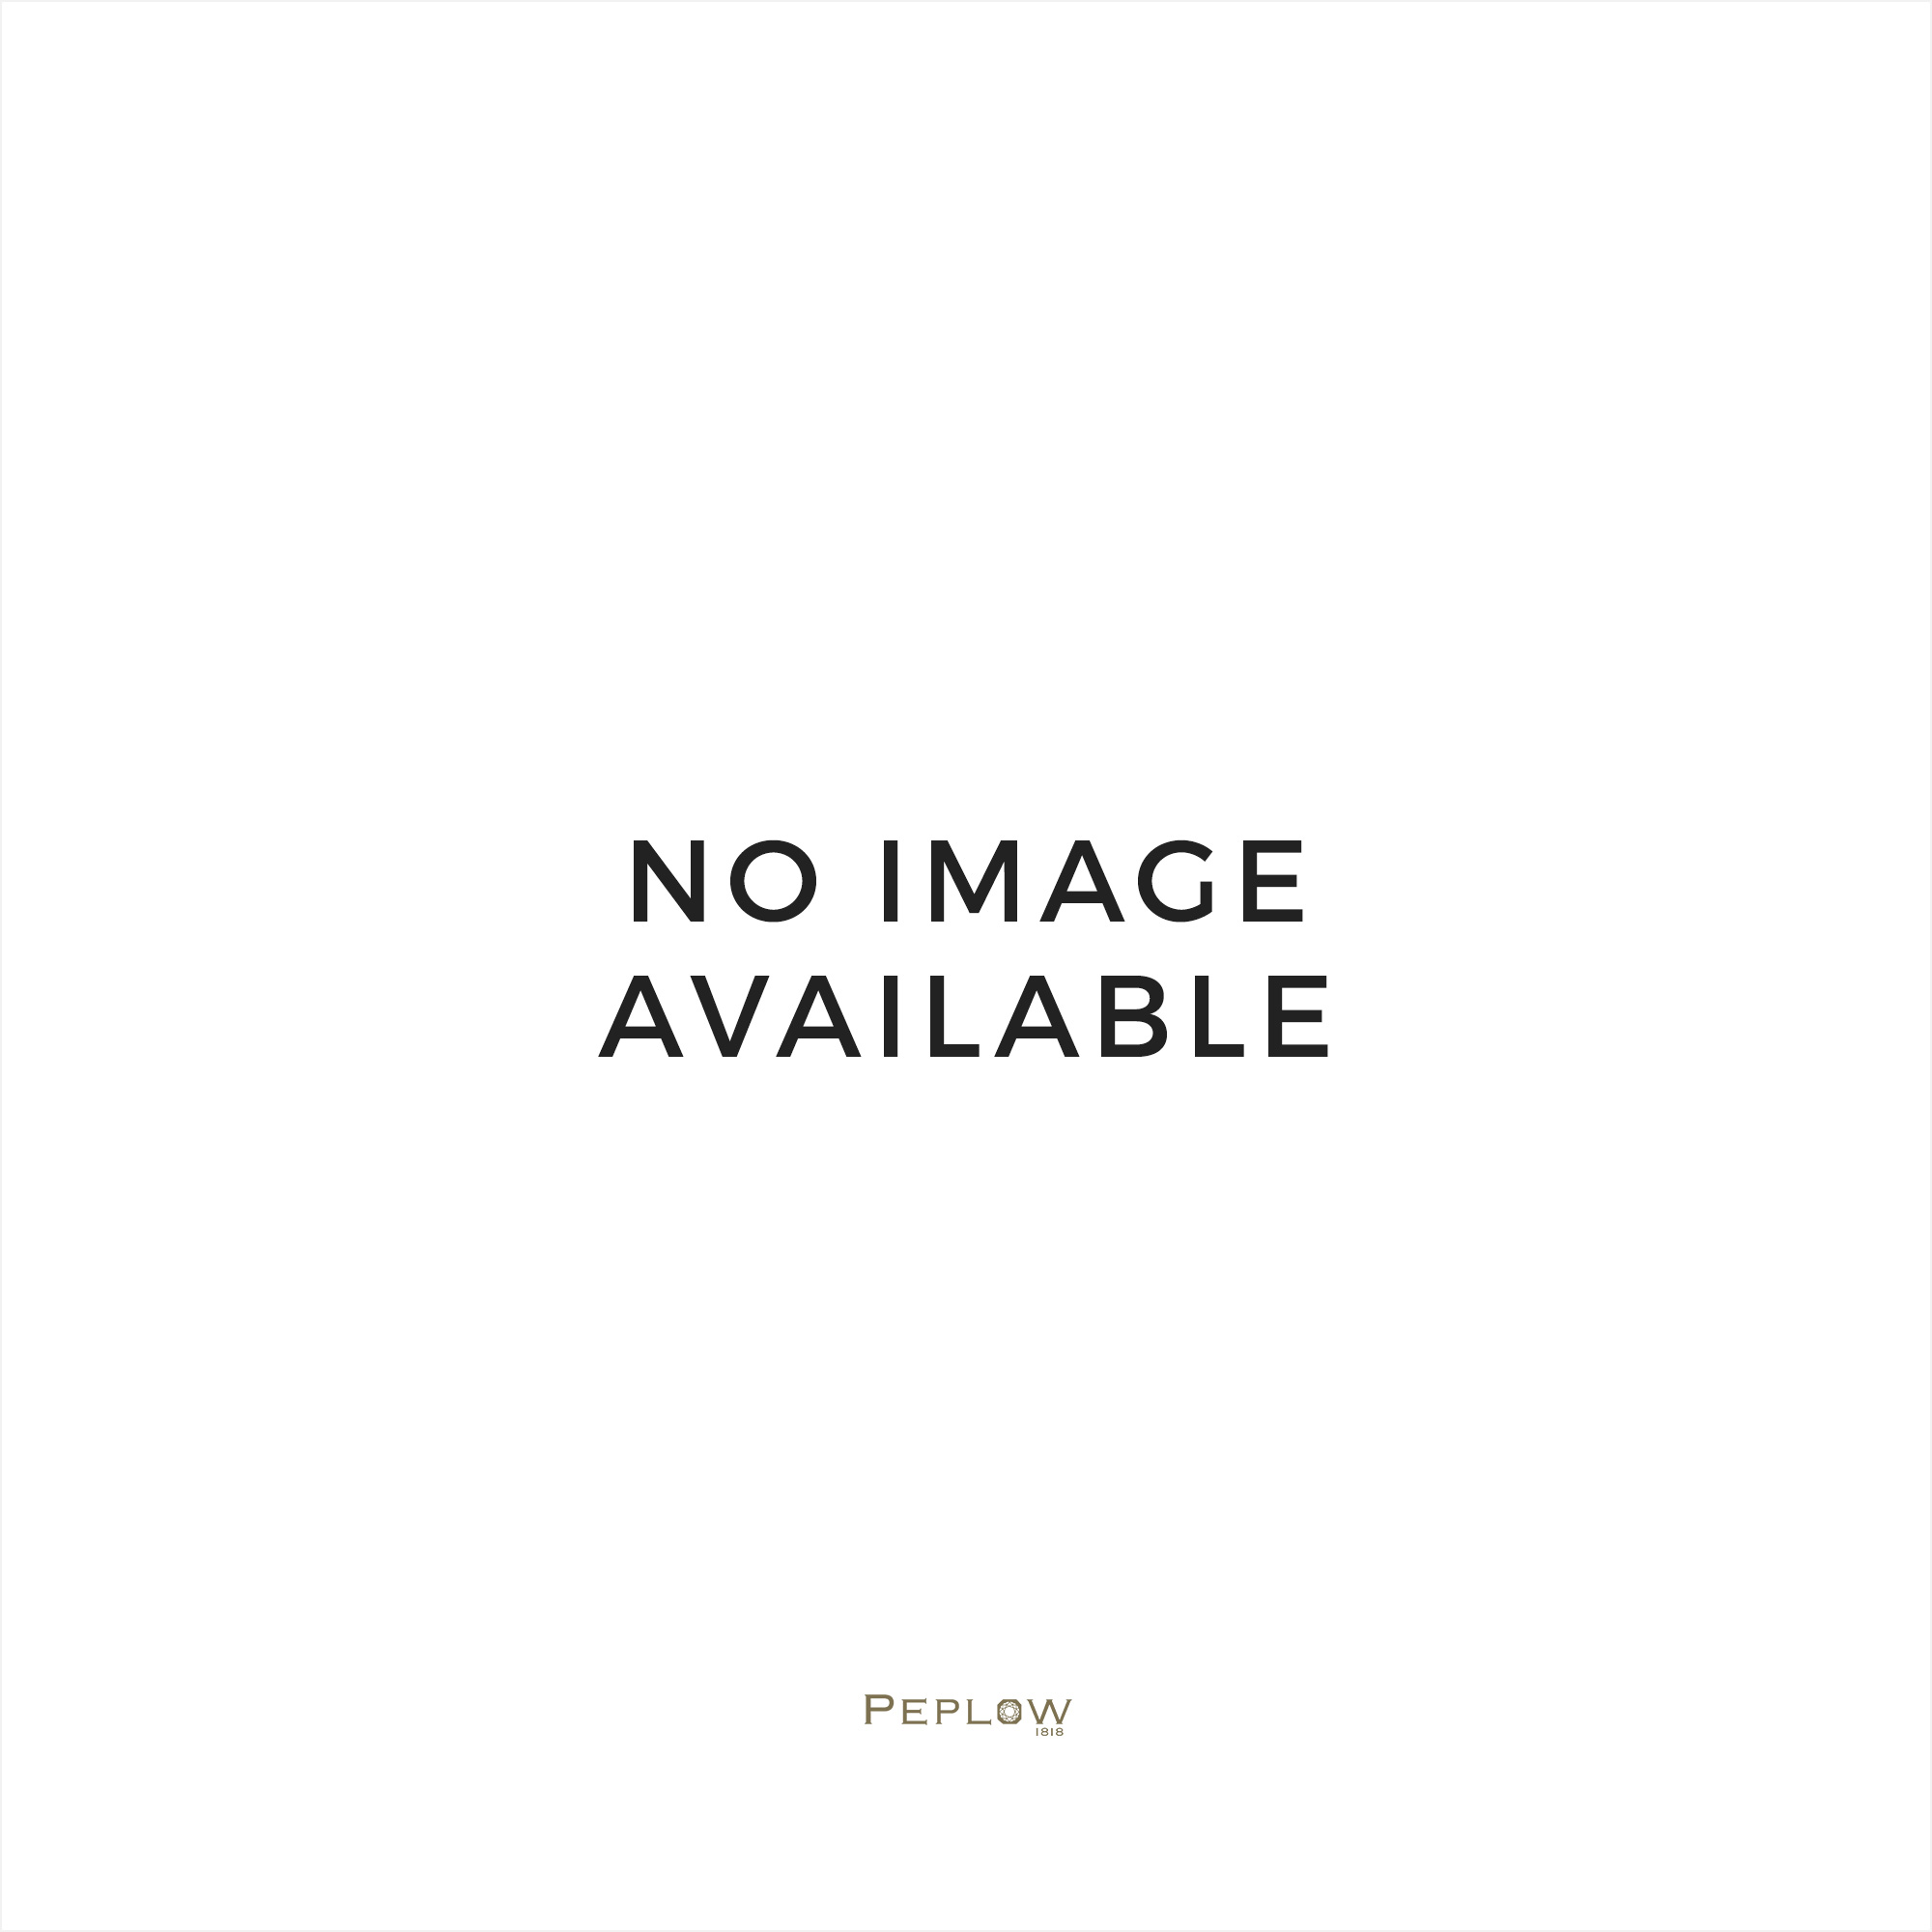 Seiko Watches Seiko ladies gold plated champagne baton dial watch SUP276P9